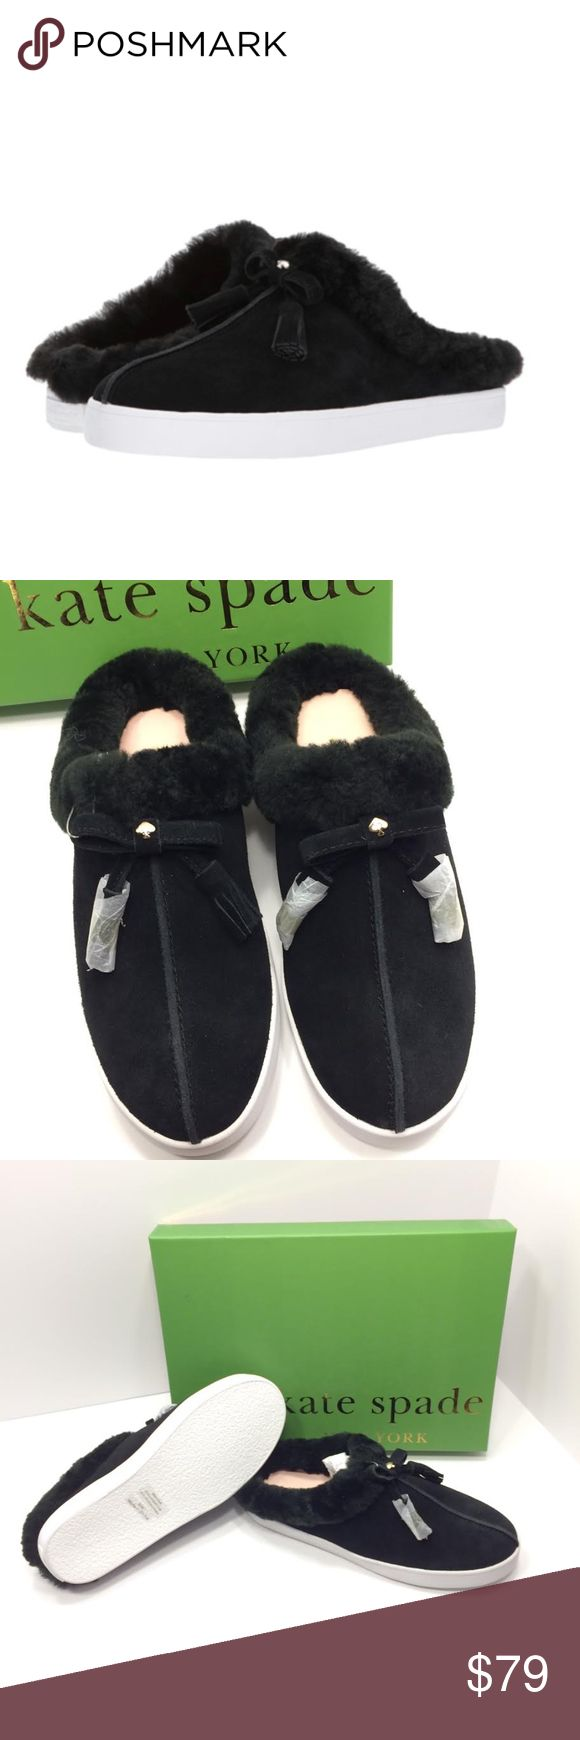 New in Box Kate Spade Limon Shearling Sneakers 6 Brand new black shearling suede slip on sneakers. These are a size 6 but they fit like a 7. Never worn new in box. Real sheep fur. The  tassels still have the protective paper wrap on them. Really nice shoe from Kate Spade. Style number on box is S1120012. Kate Spade Shoes Mules & Clogs